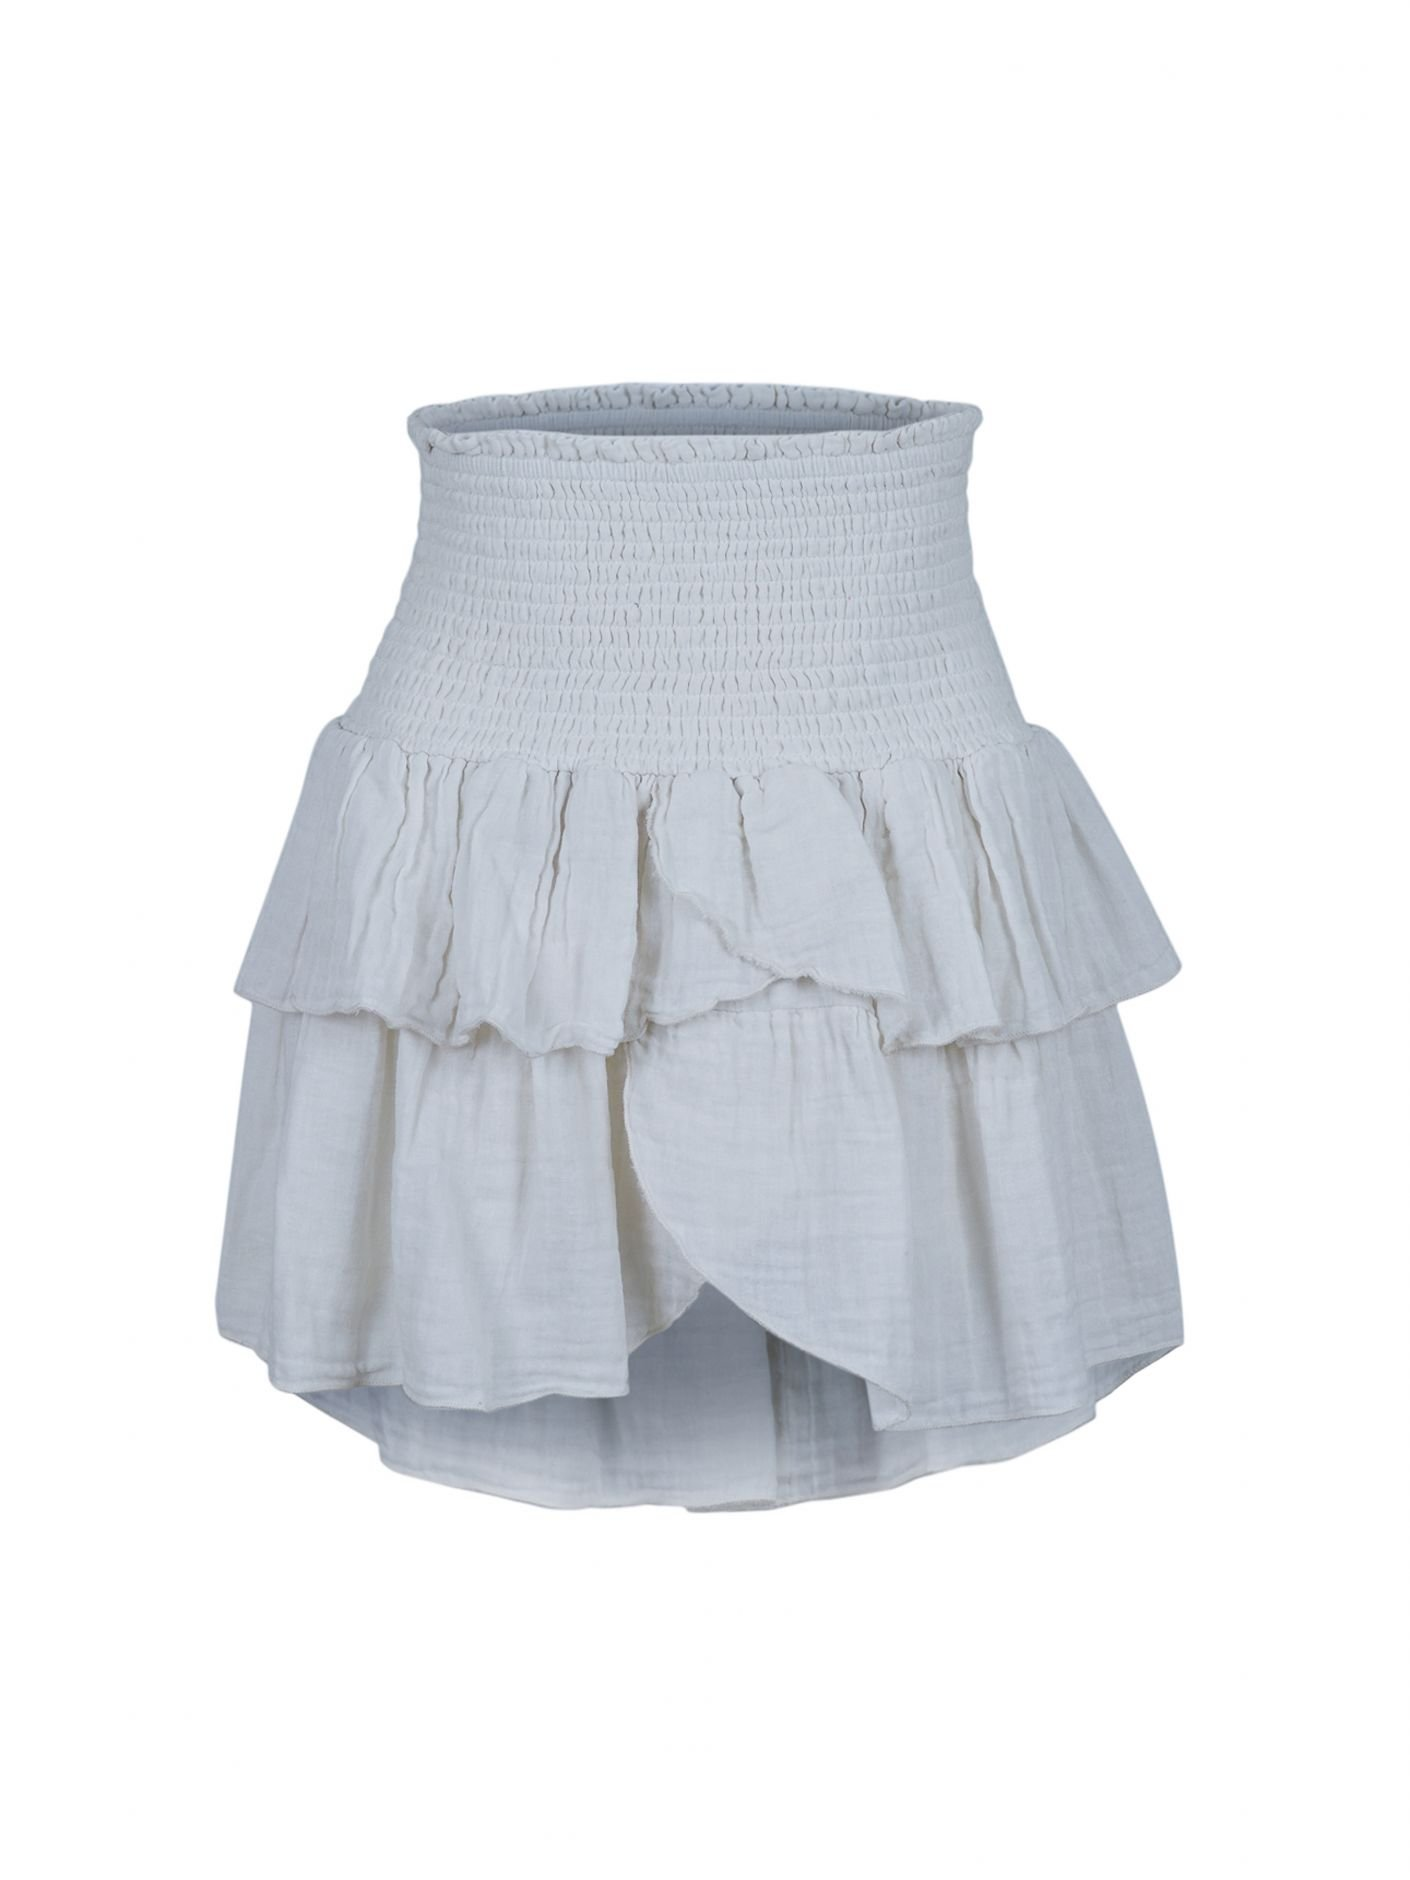 Neo Noir carin gauze Skirt - Off white